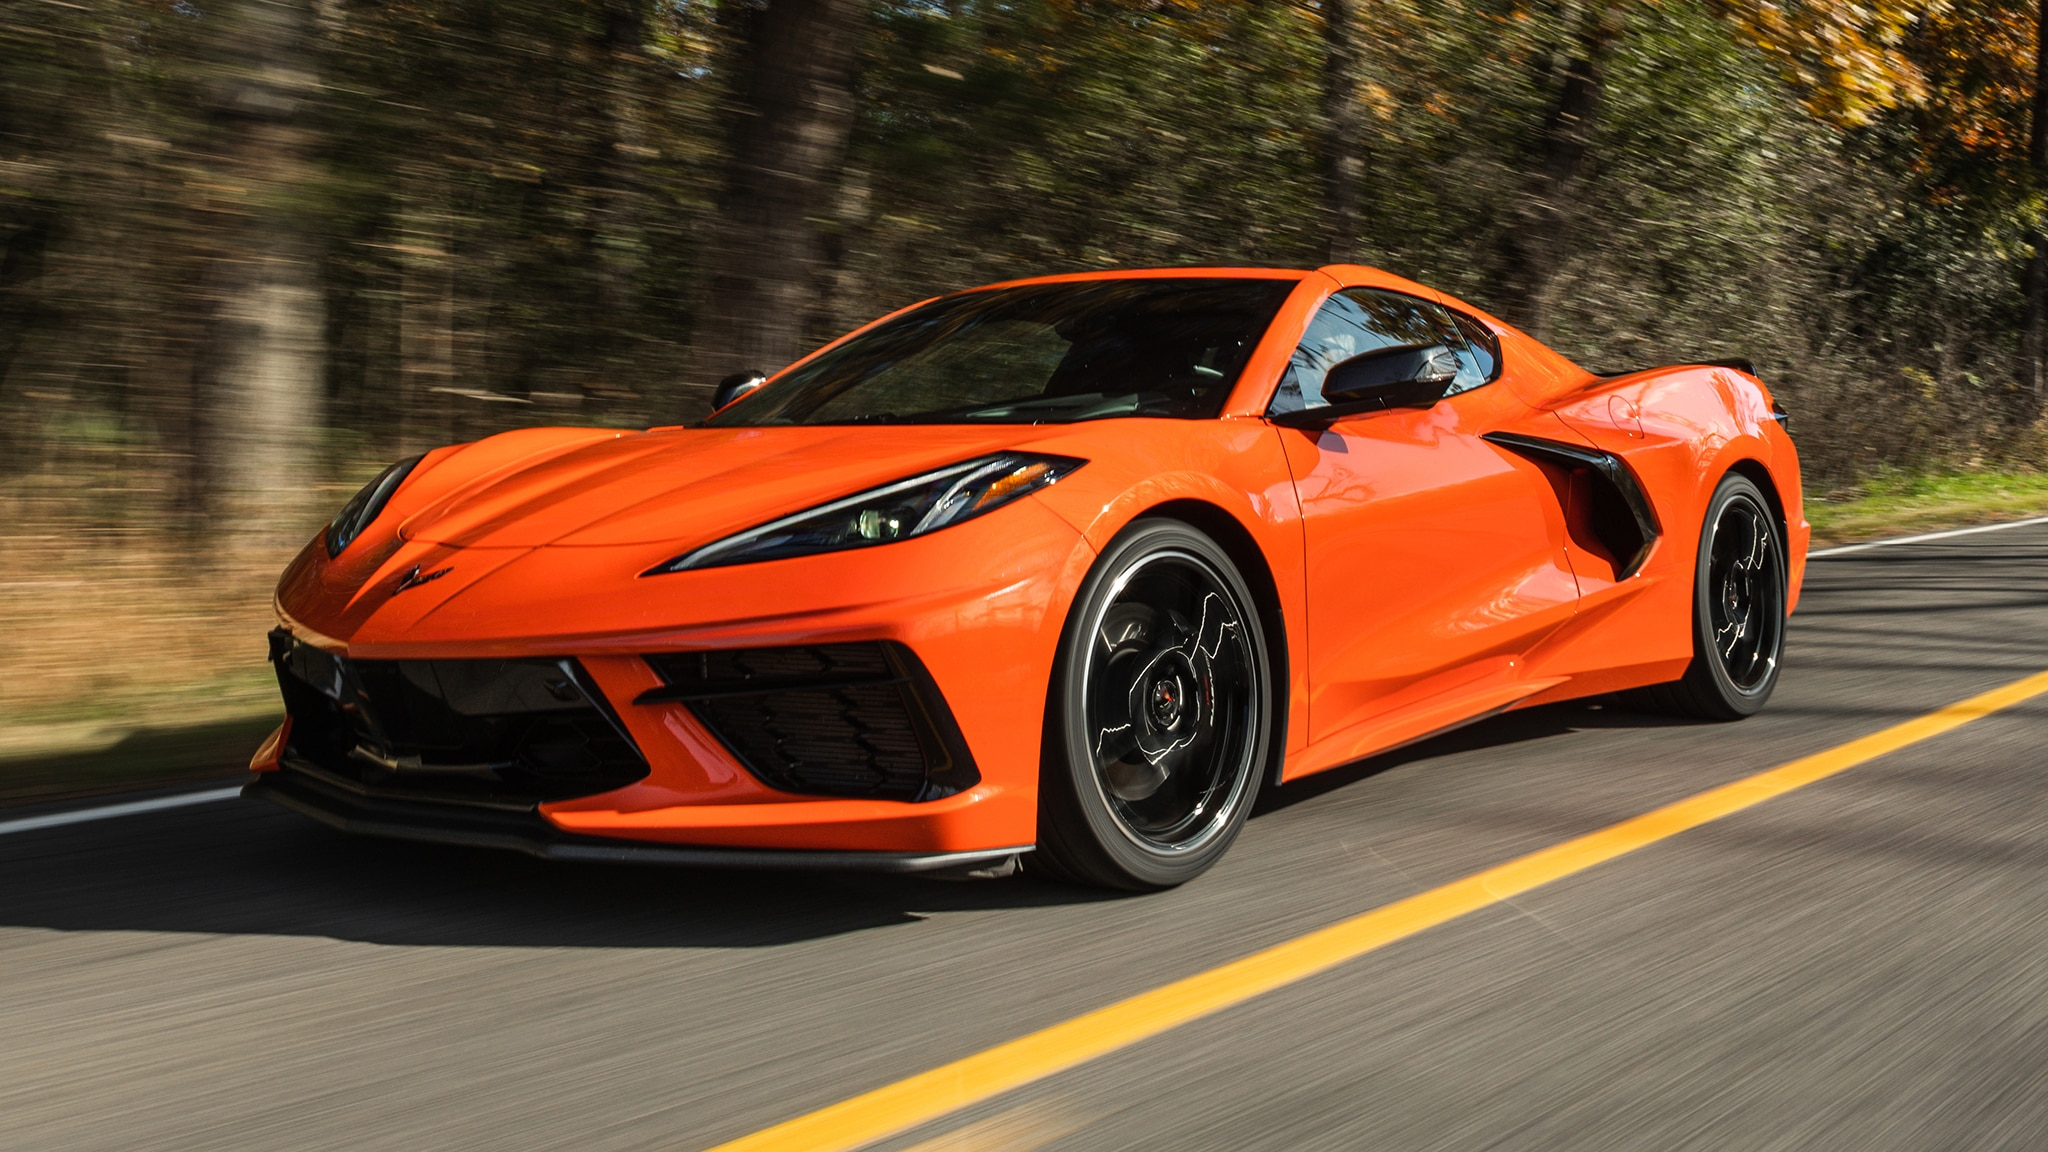 2020 C8 Corvette Stingray First Drive Review: Brilliant ...